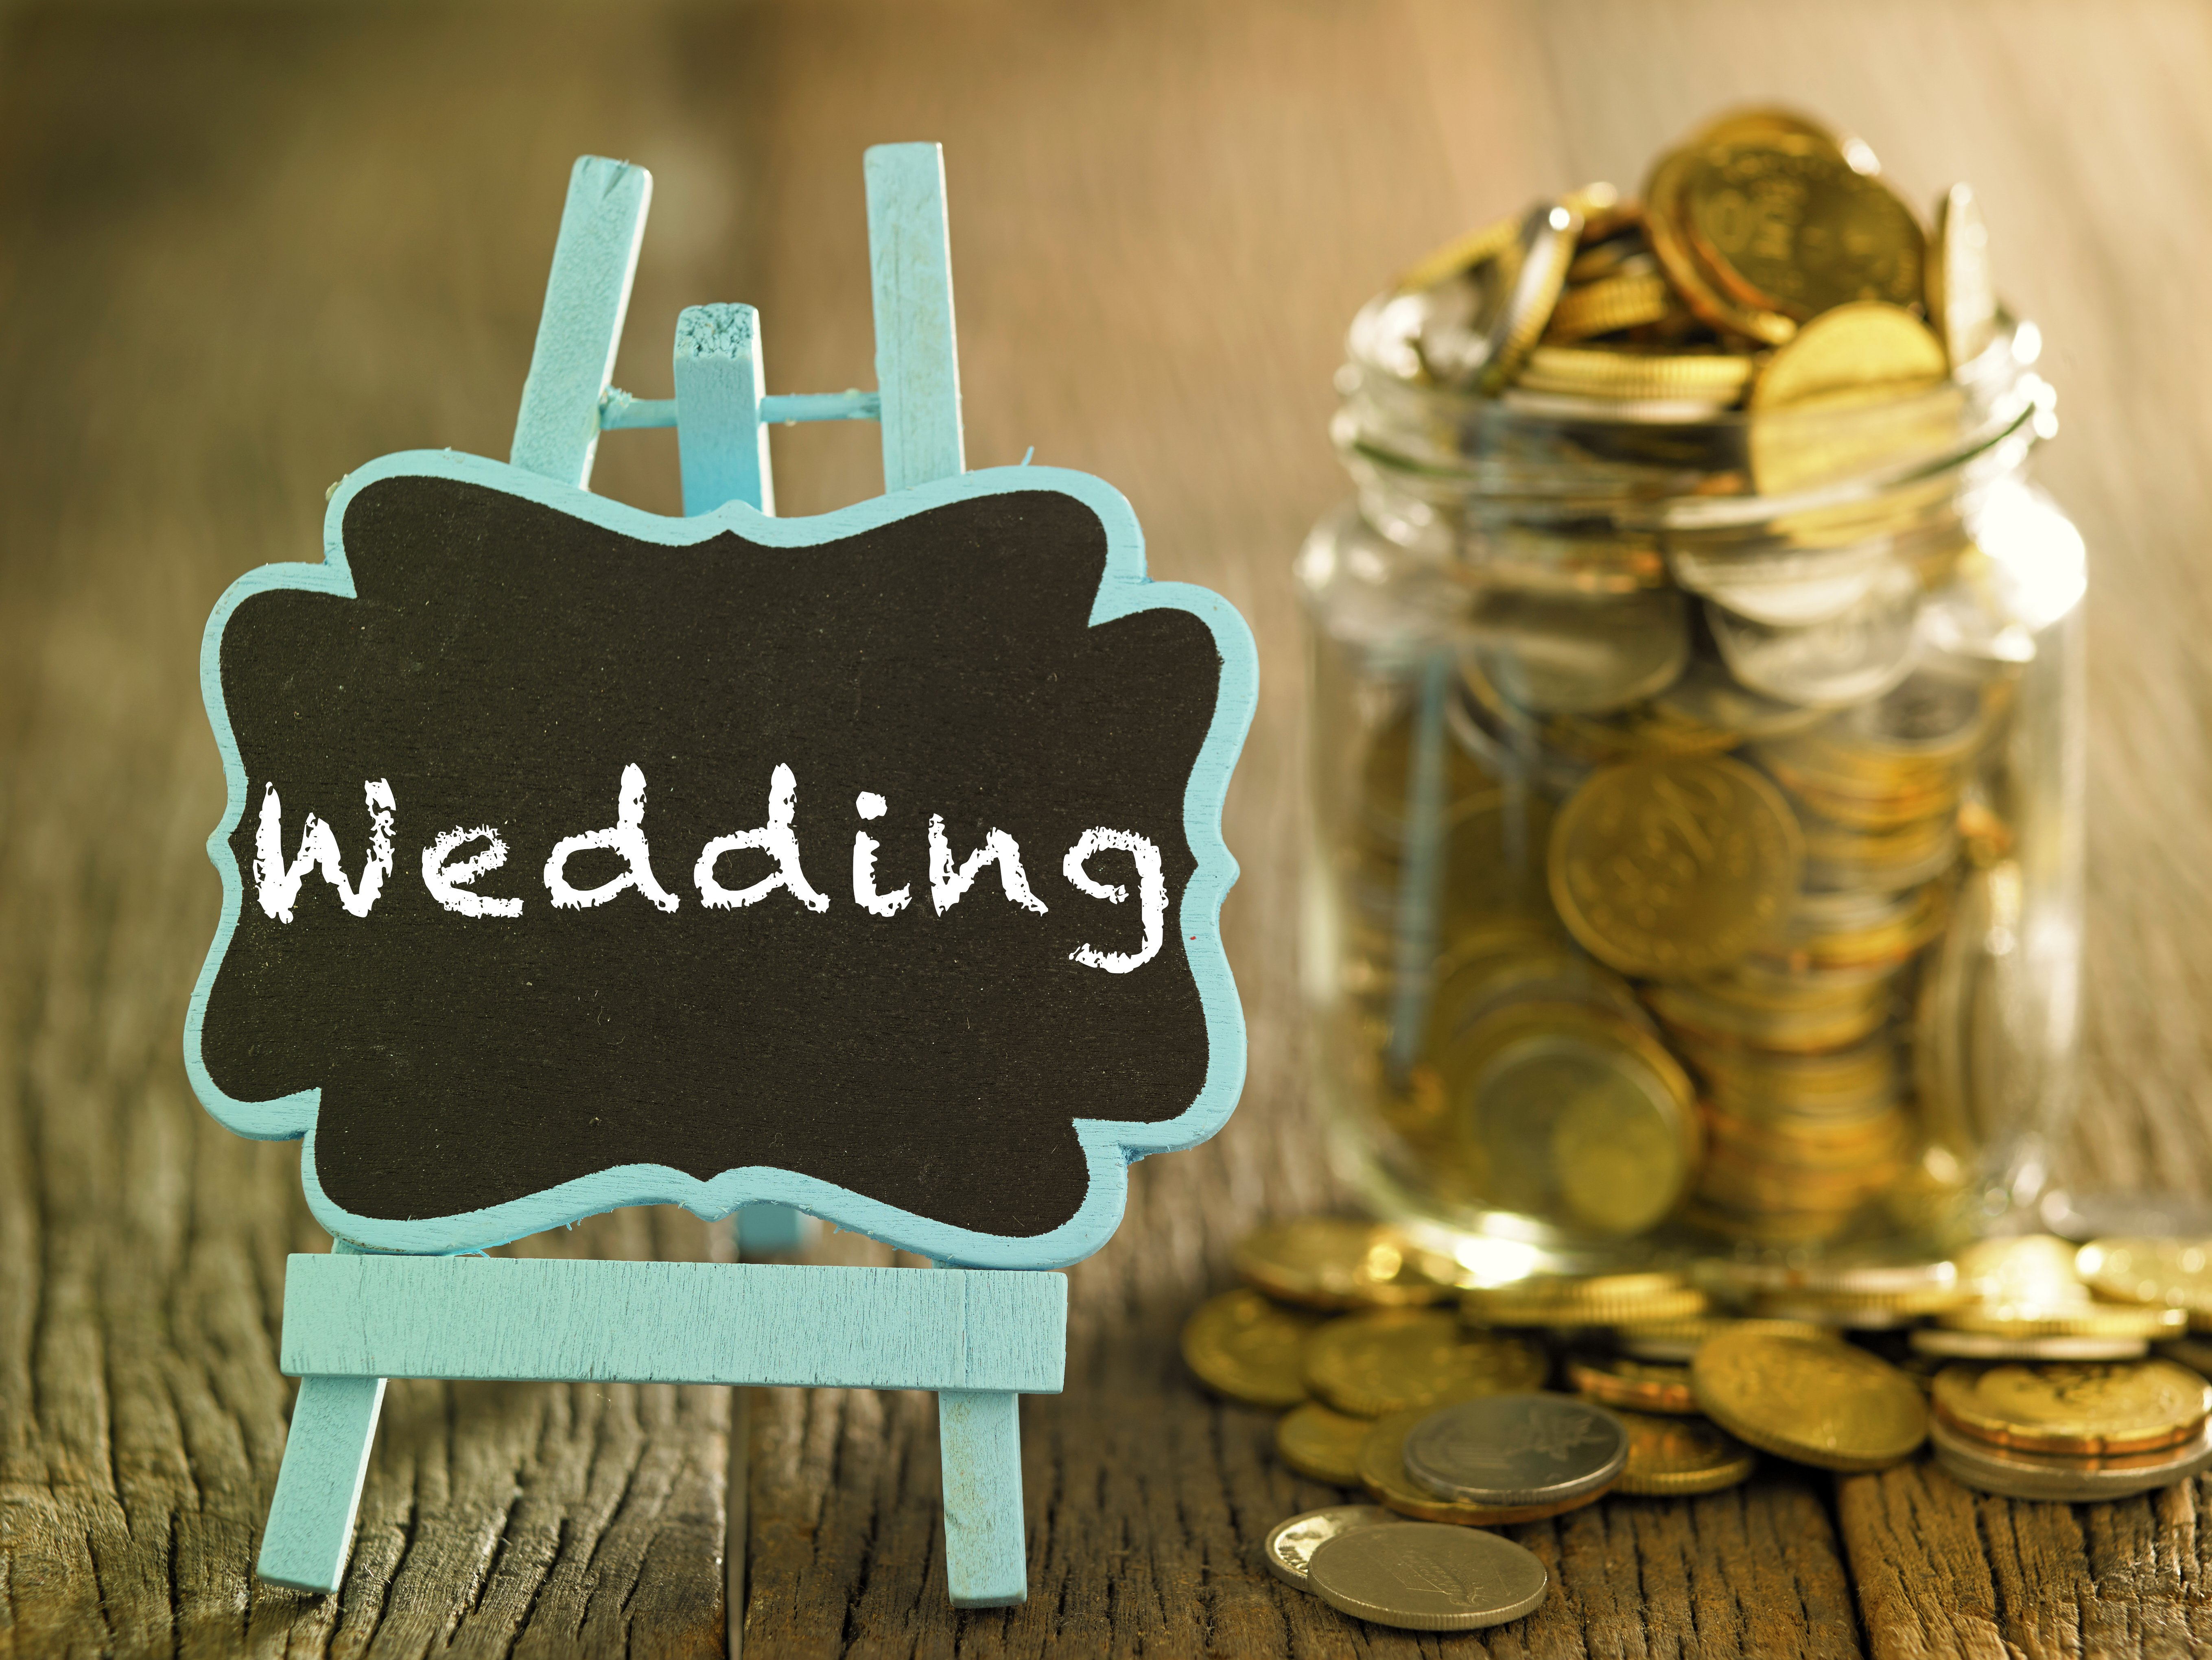 Jar full of savings for the big day. | Photo: Shutterstock